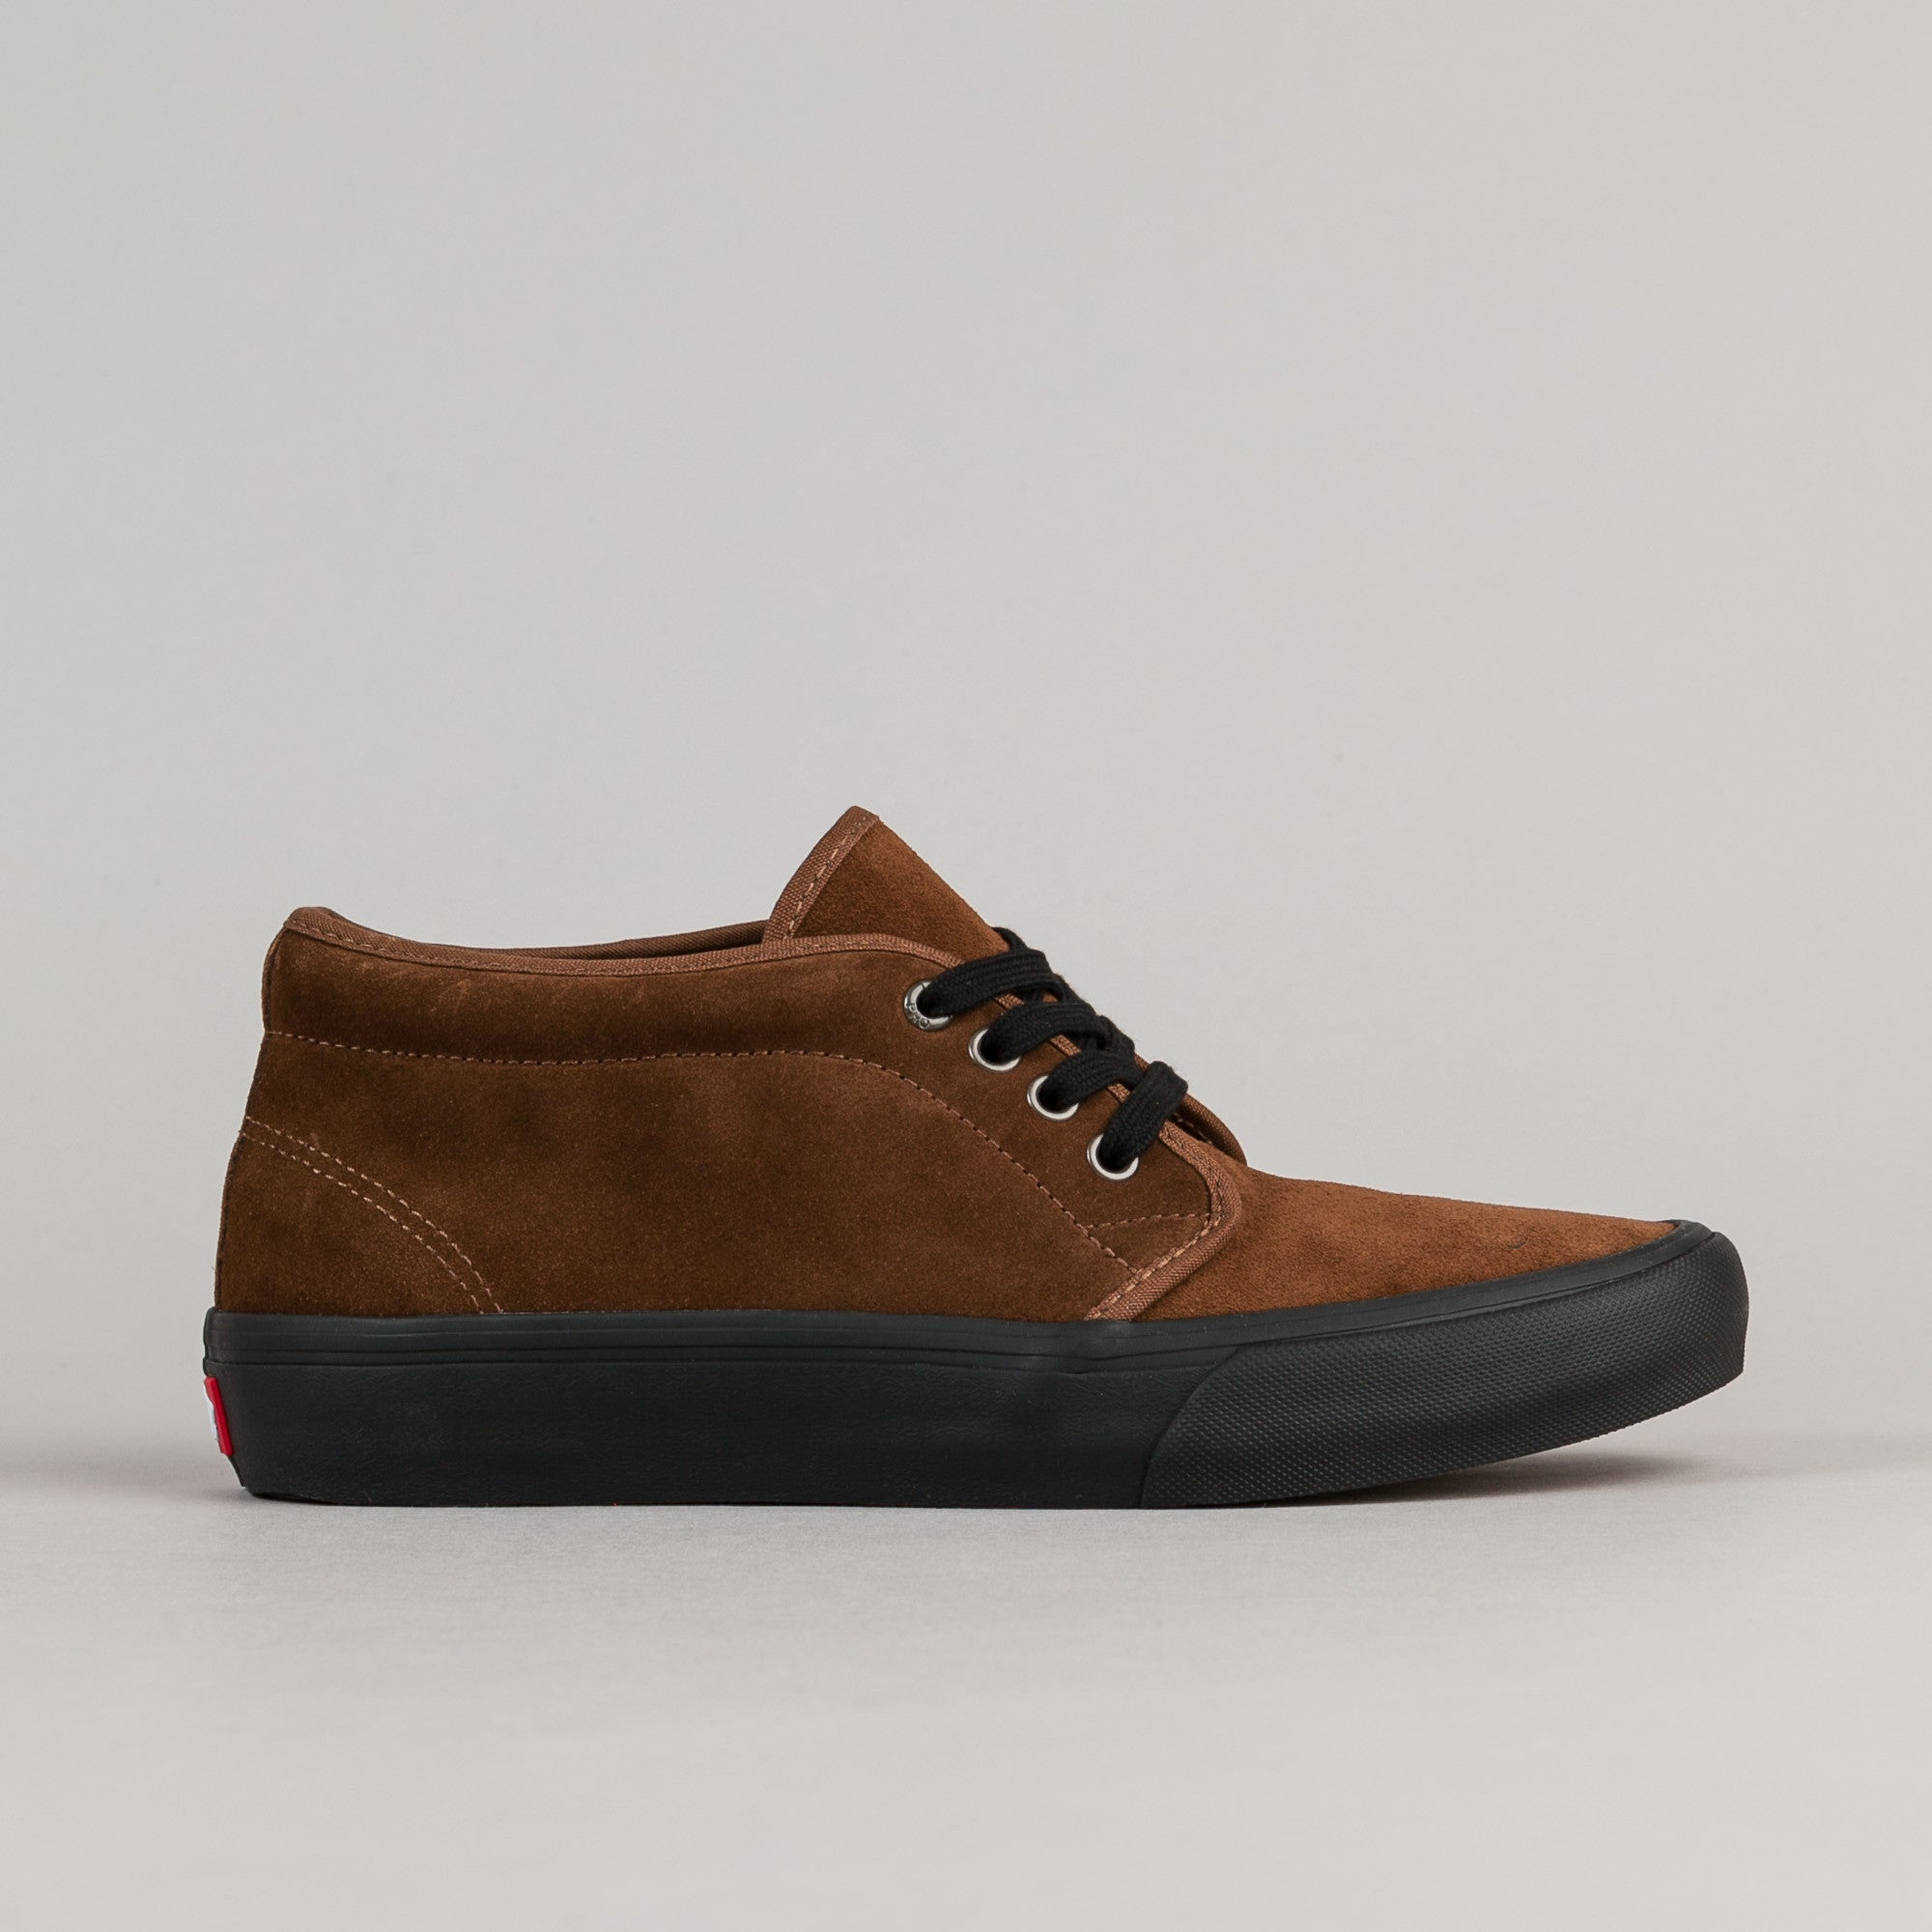 Vans 50th Chukka Pro '93 Shoes - Bison / Black